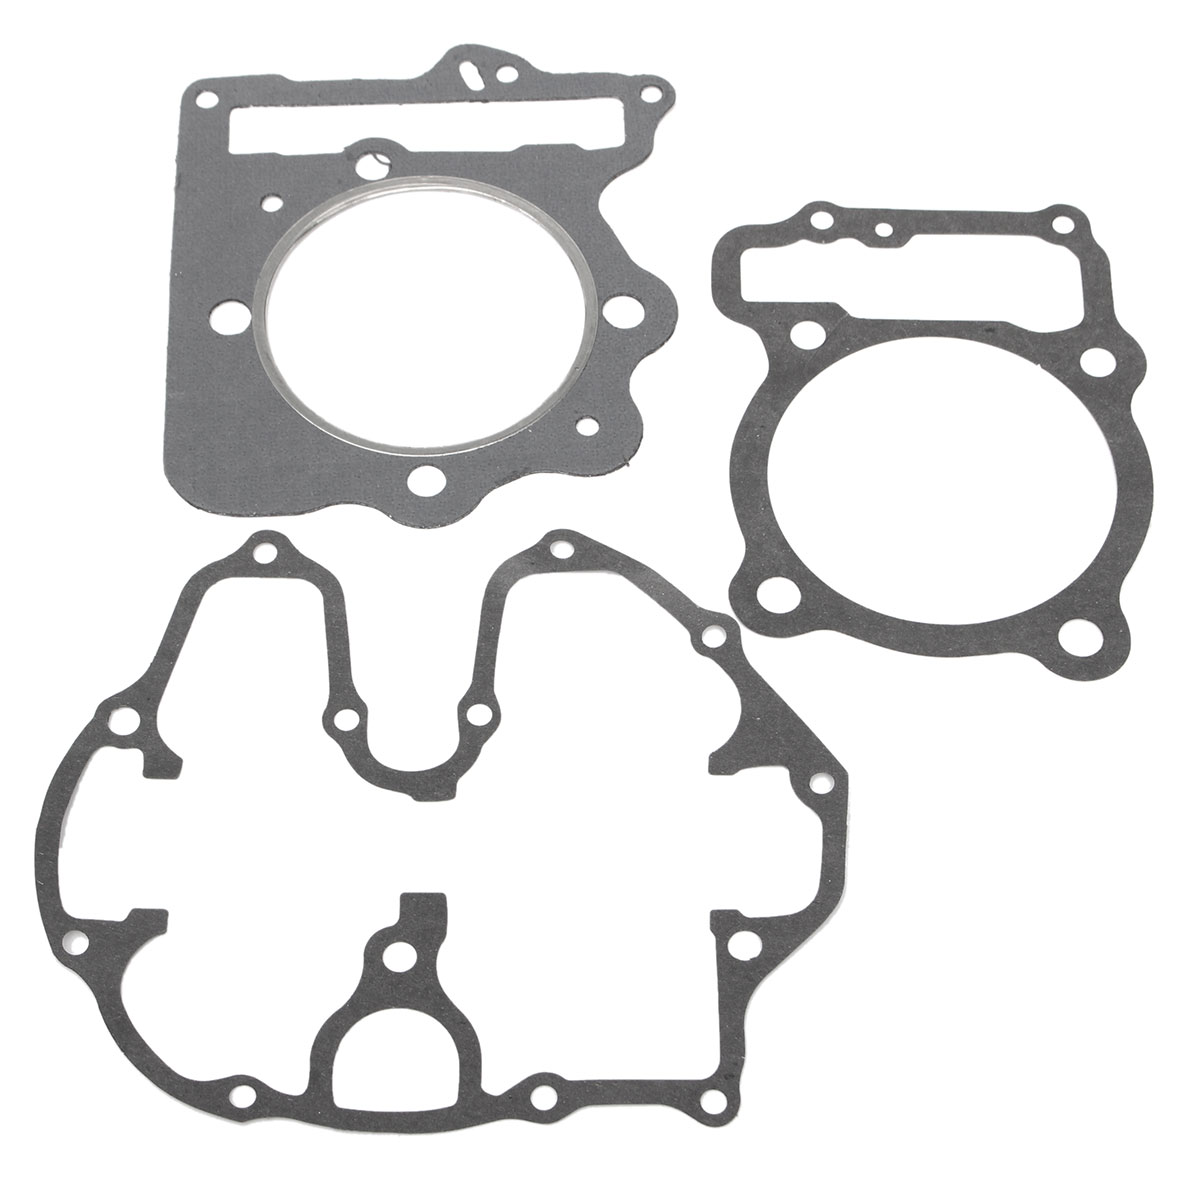 Cylinder Piston Gasket Top End Kit For Motorcycle Honda XR400R 1996-2004